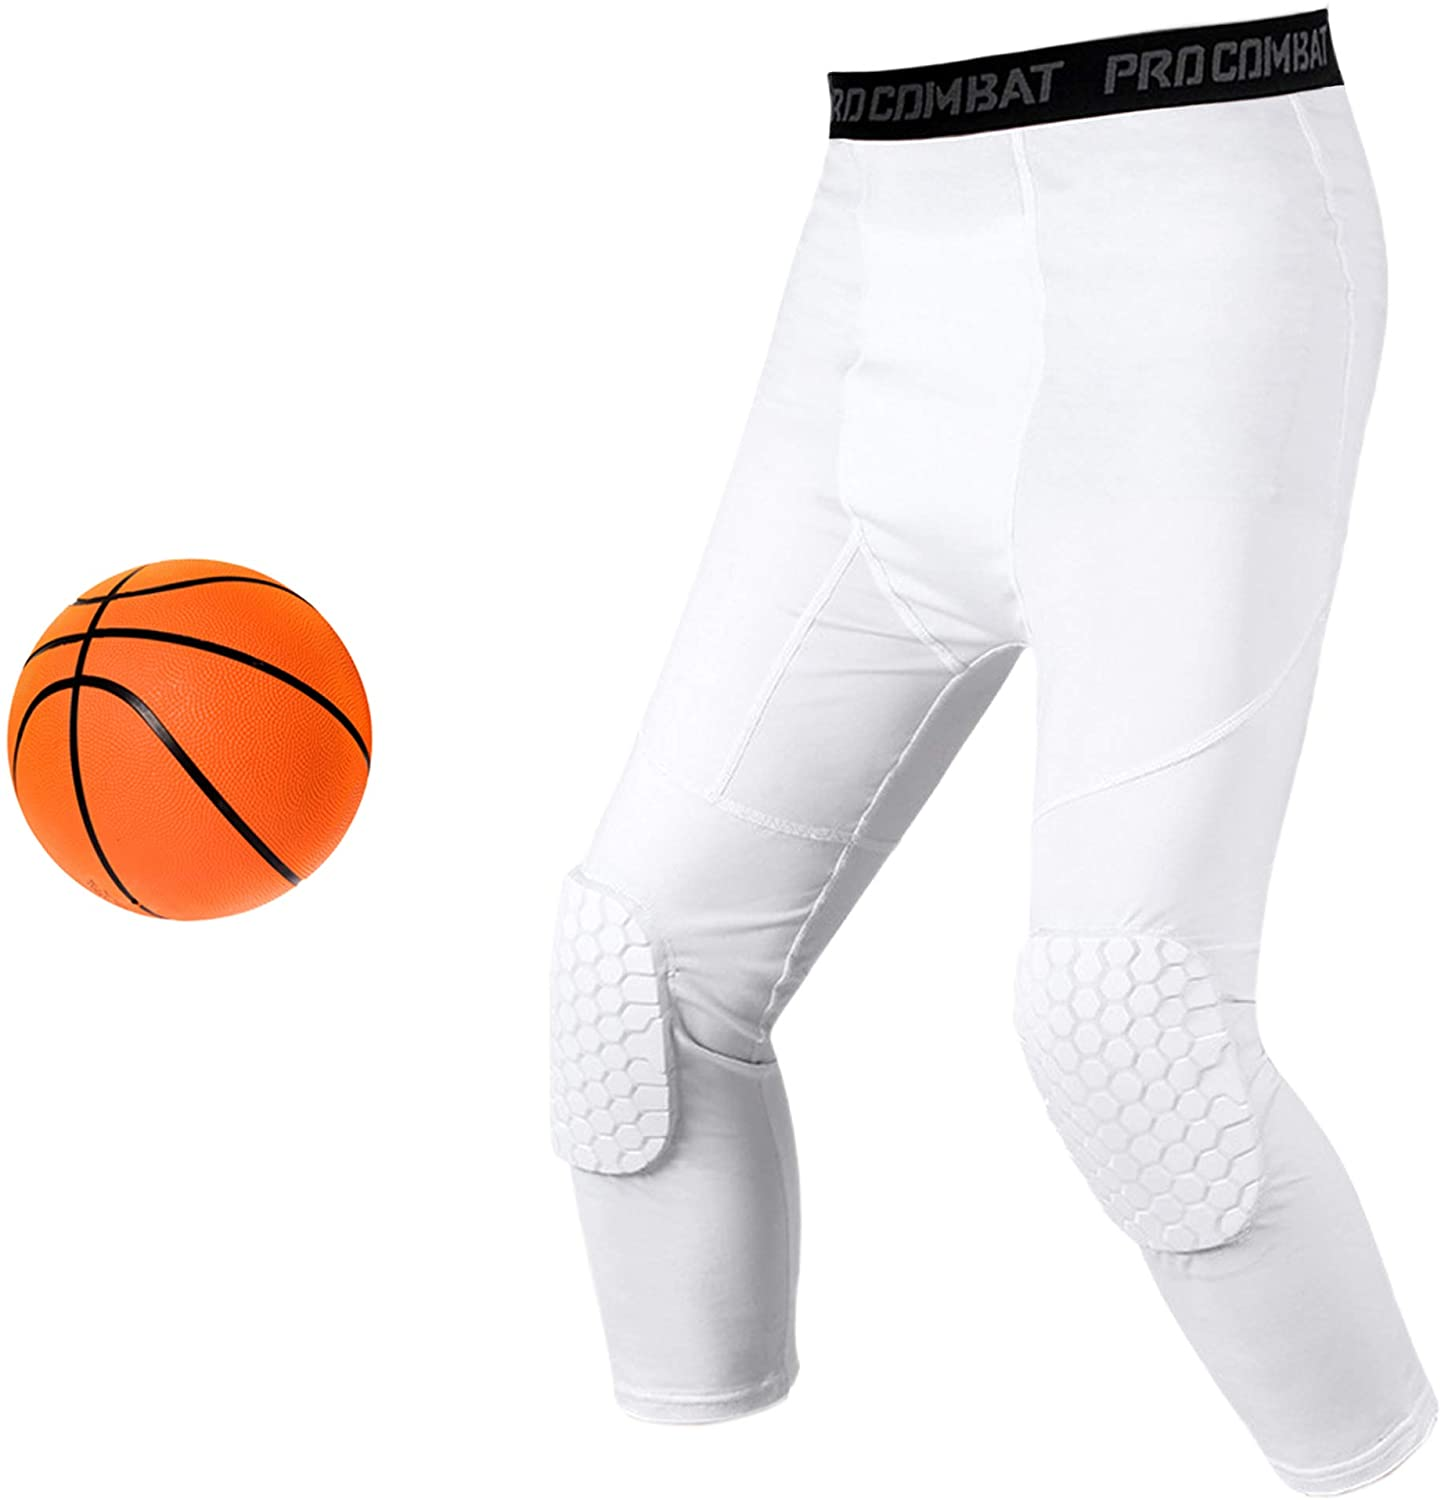 Basketball Compression Pants With Knee Pads, White 3/4 Capri Compression Pants Padded, Basketball Tights Leggings for Men Women Boys Girls, Youth Knee Pads for Basketball Softball Volleyball Soccer